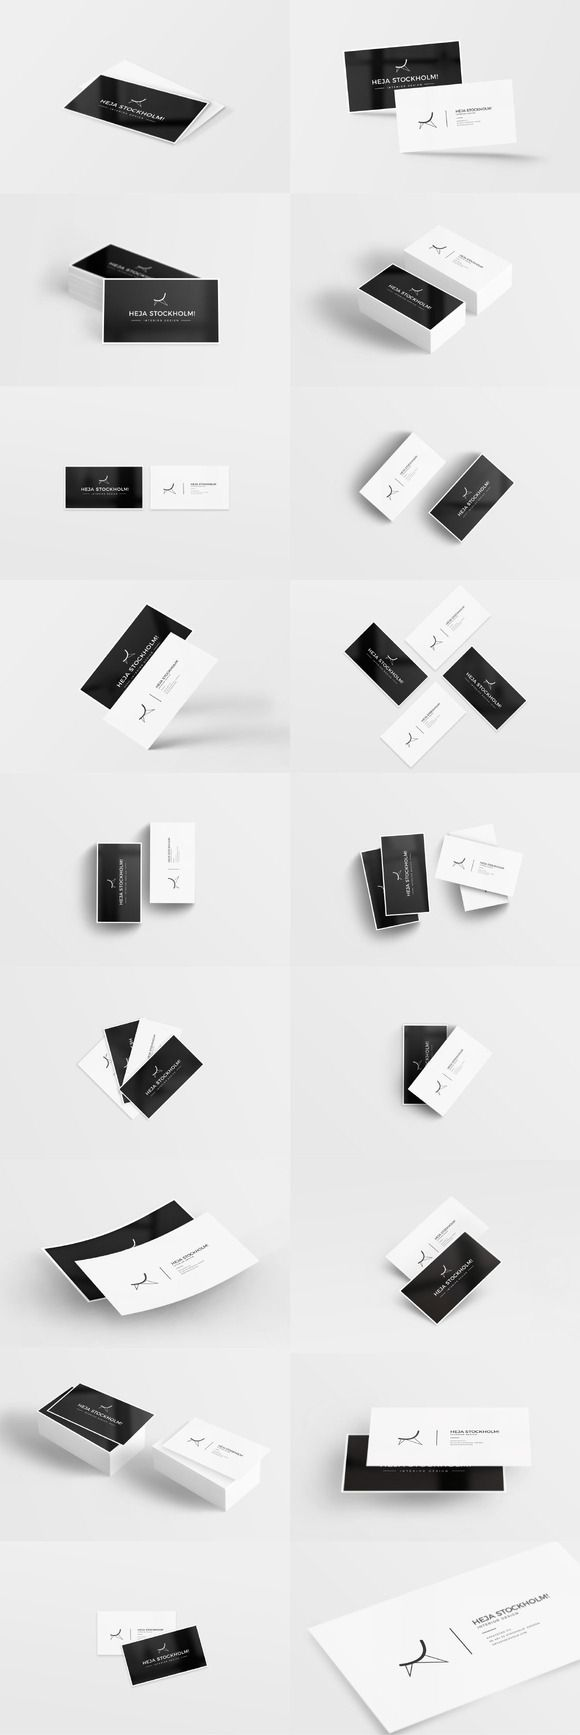 32 Clean Business Card Mockups by Worn Out Media Co. on Creative Market